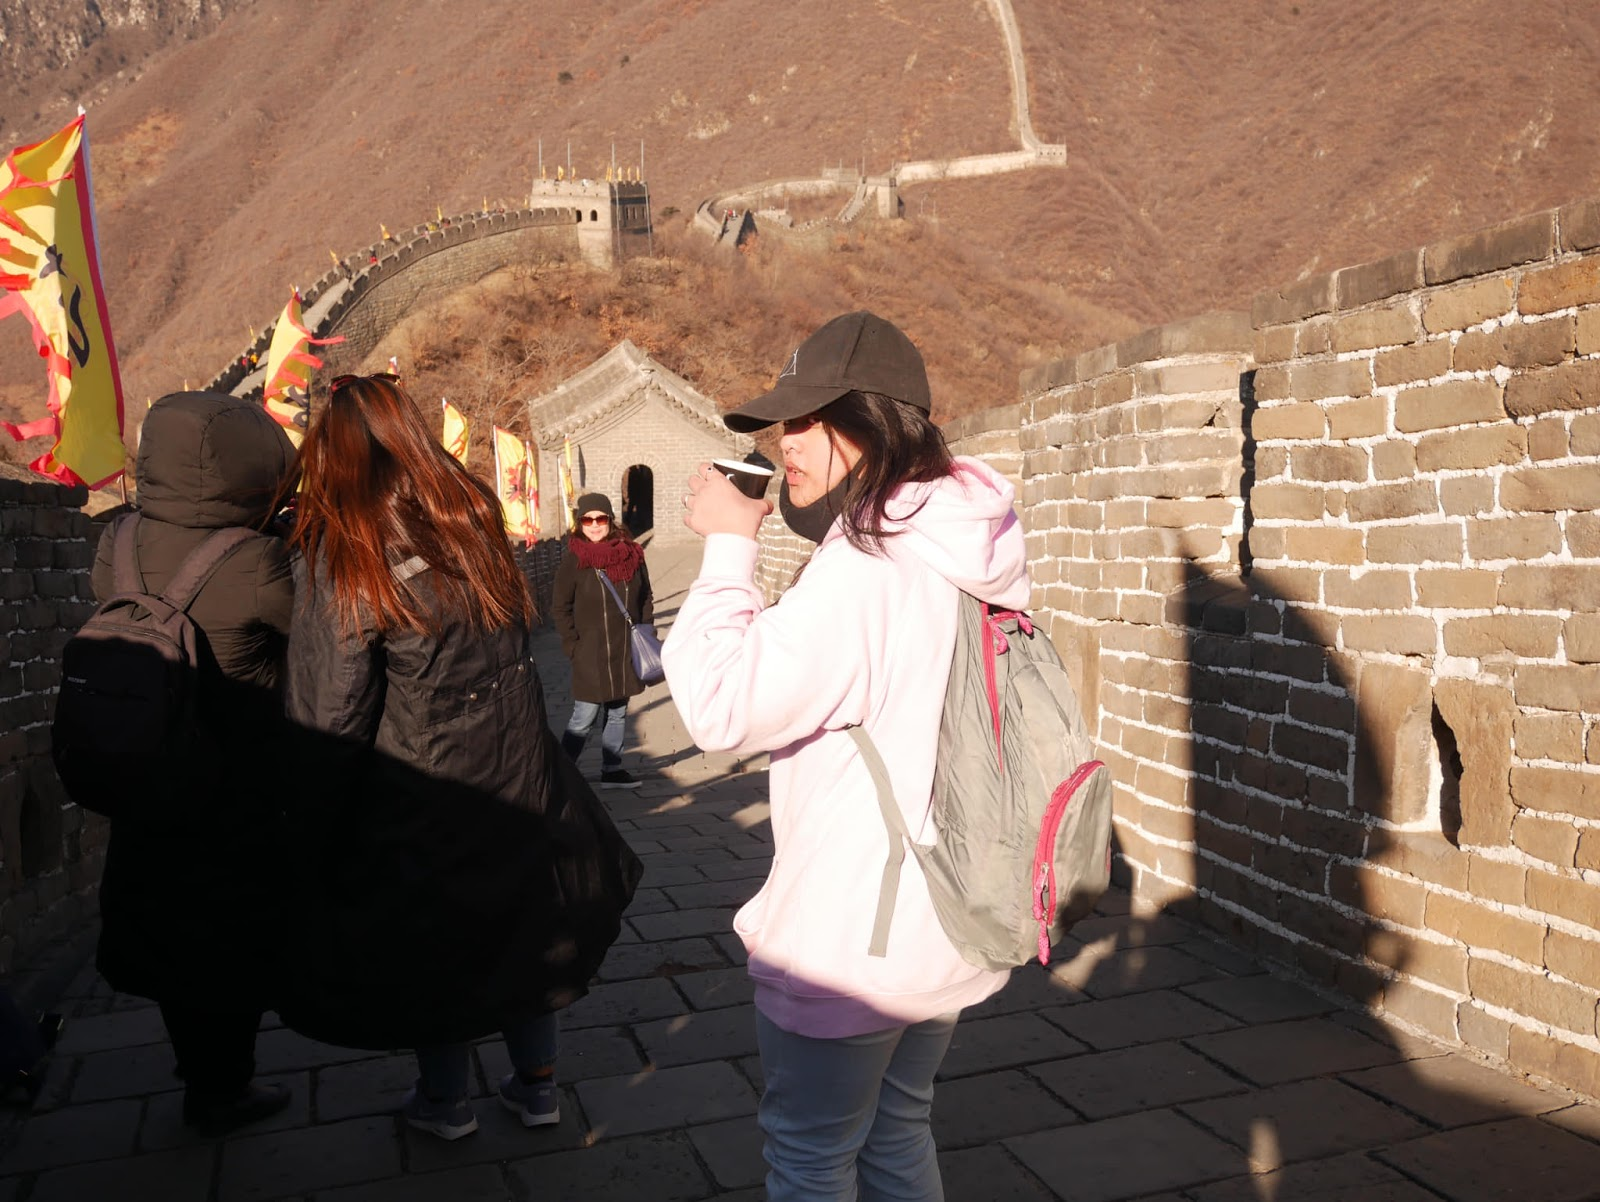 Visiting Great Wall of China during a layover tour